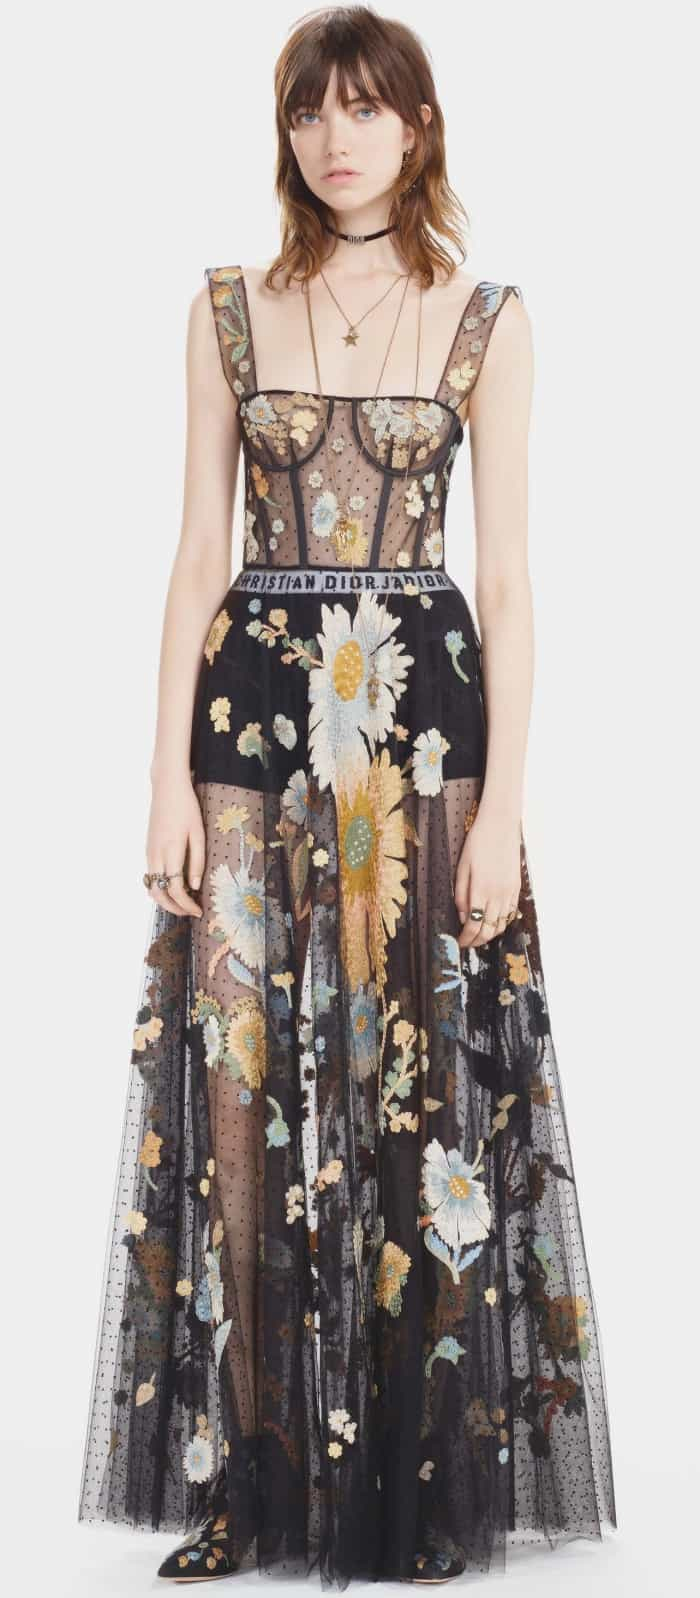 Christian Dior Pre-Fall 2017 Floral Embroidered Sheer Gown